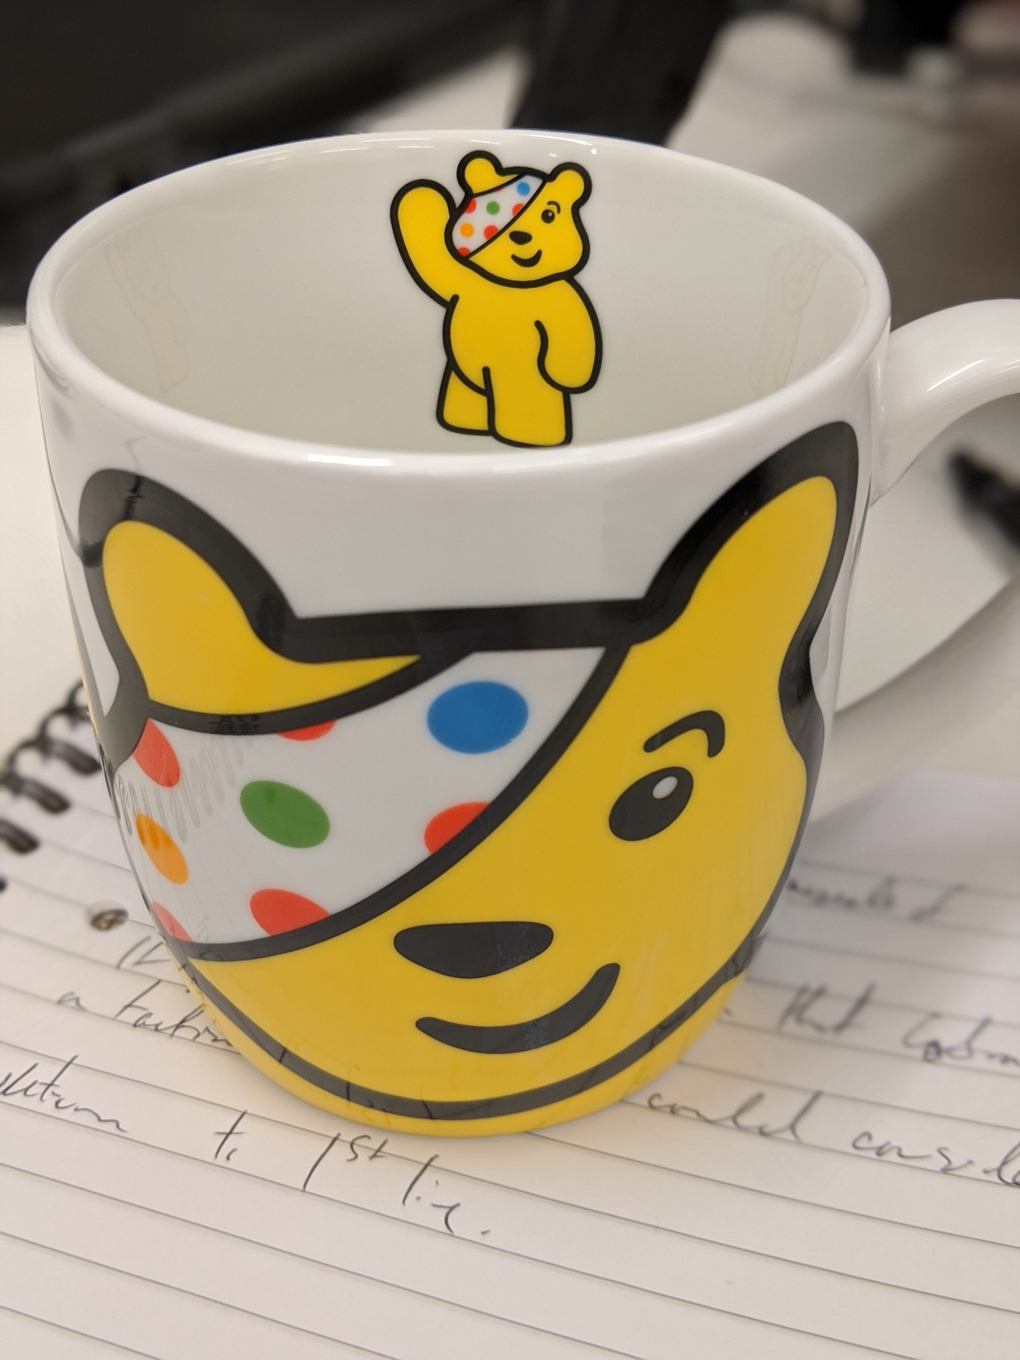 A photo of a mug decorated with a picture of pudsey the bear